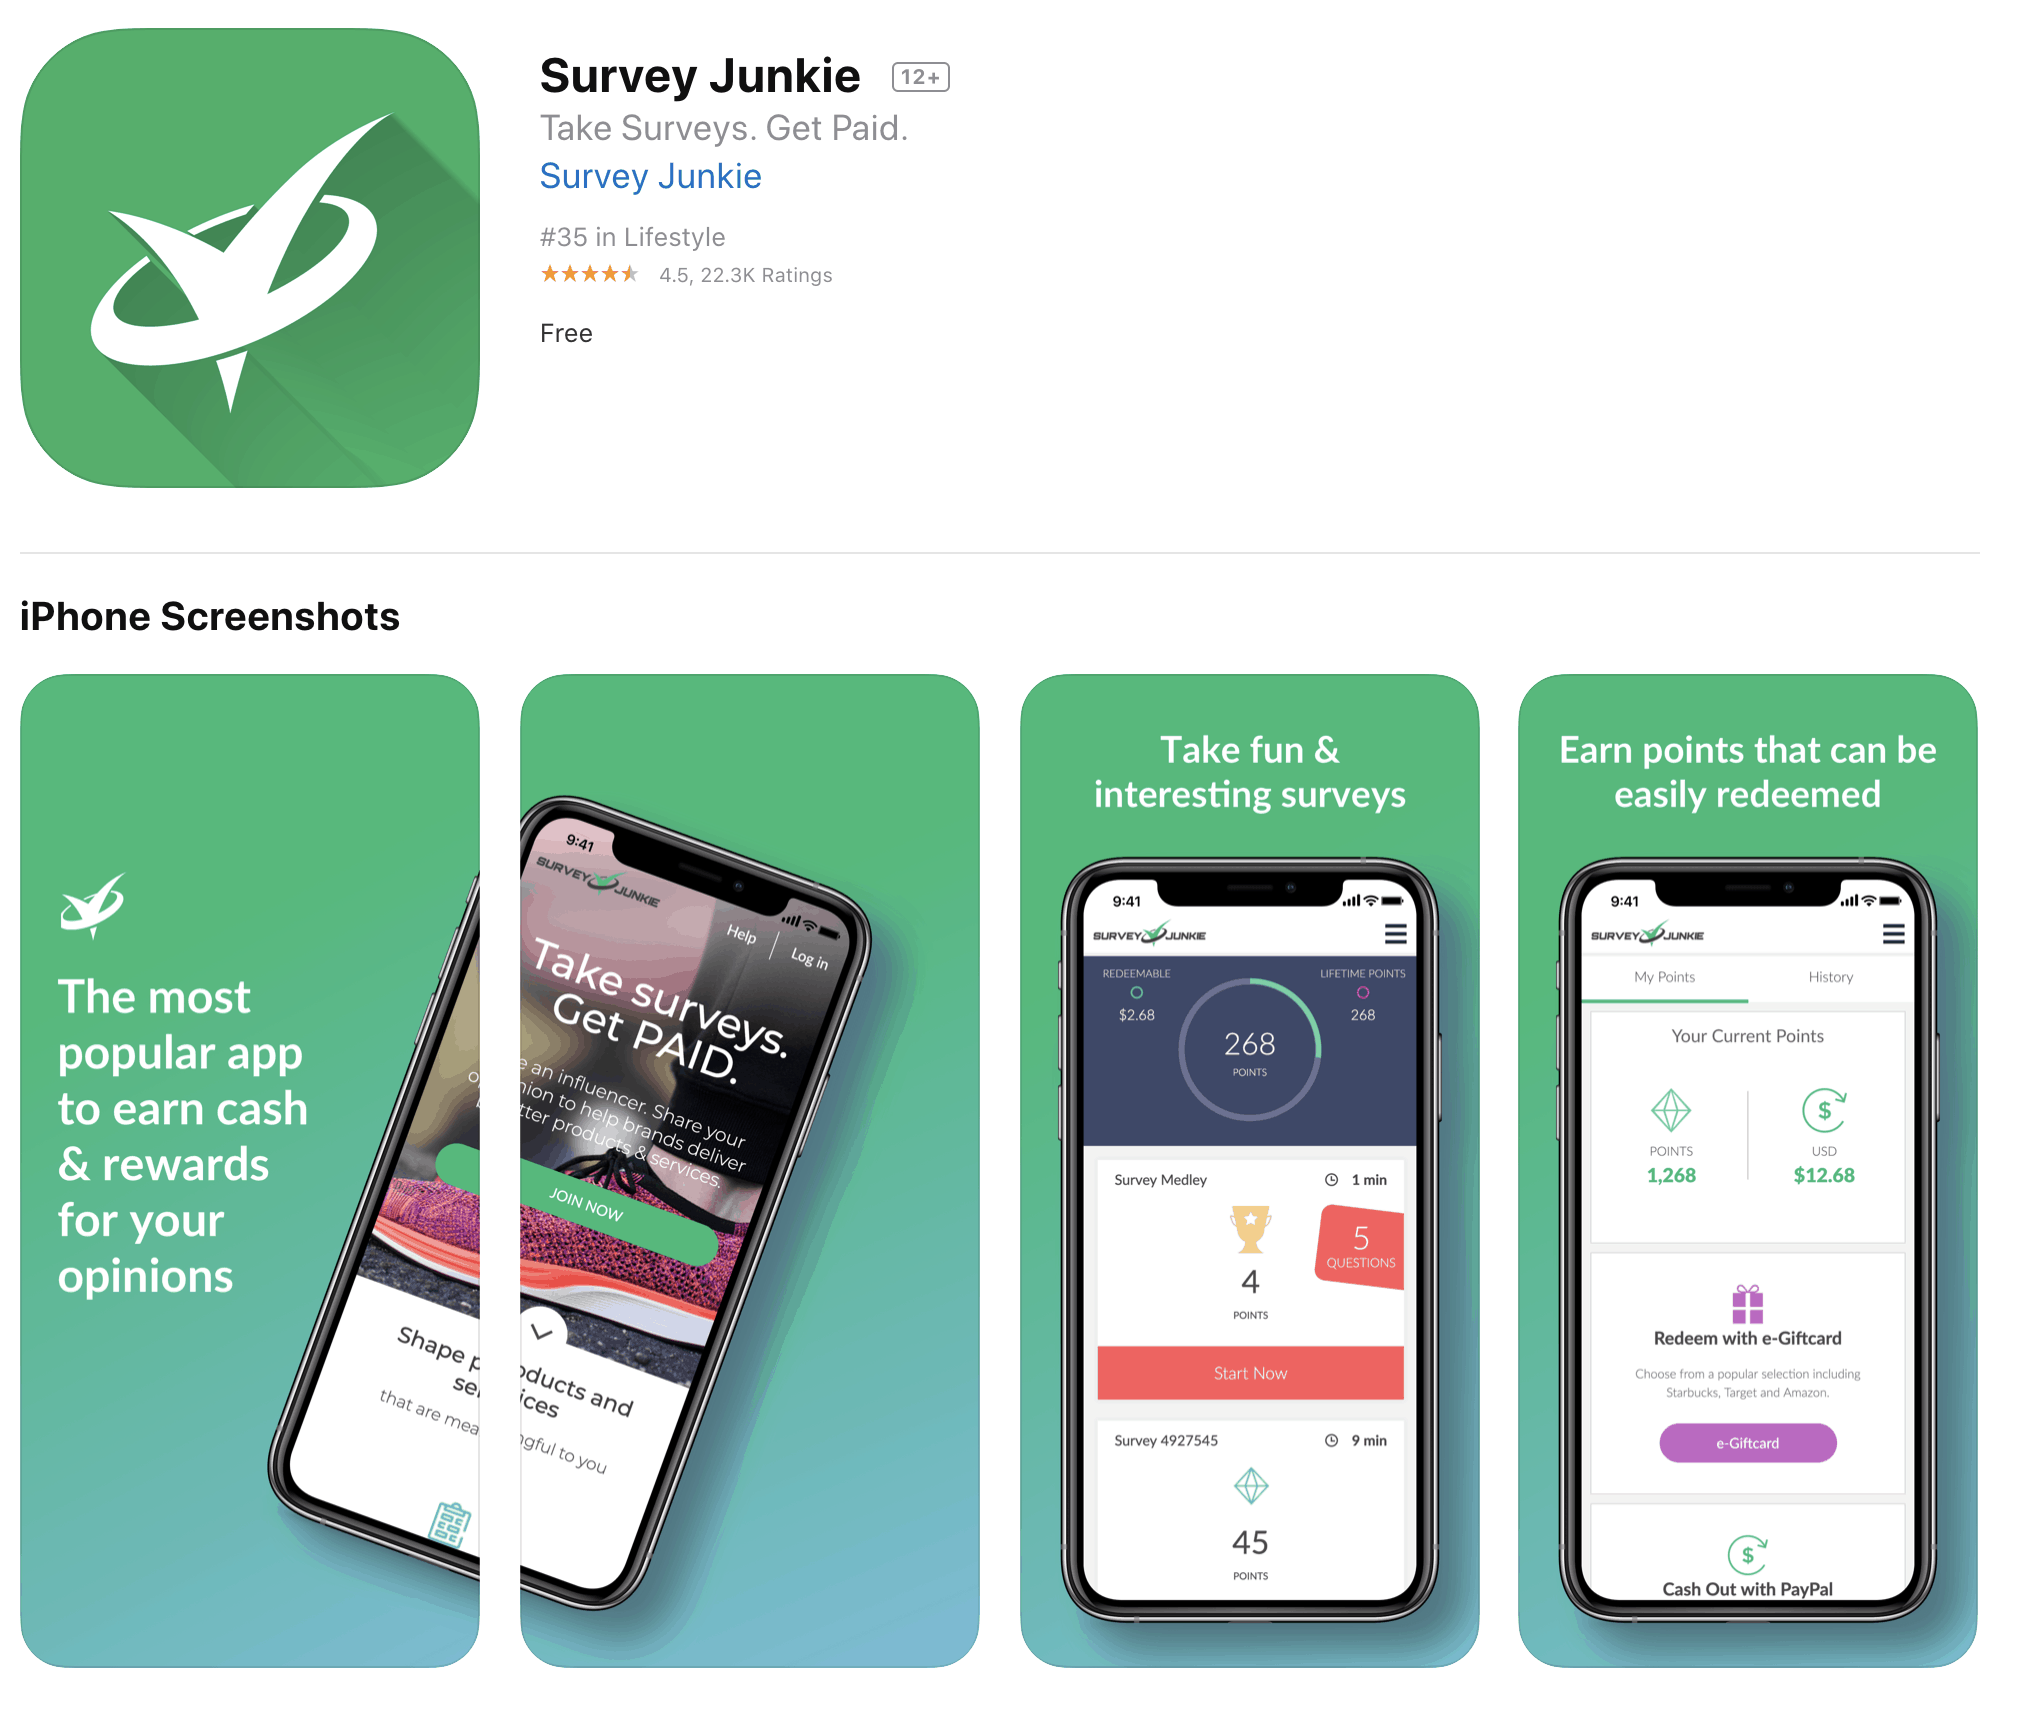 Survey Junkie on the app store